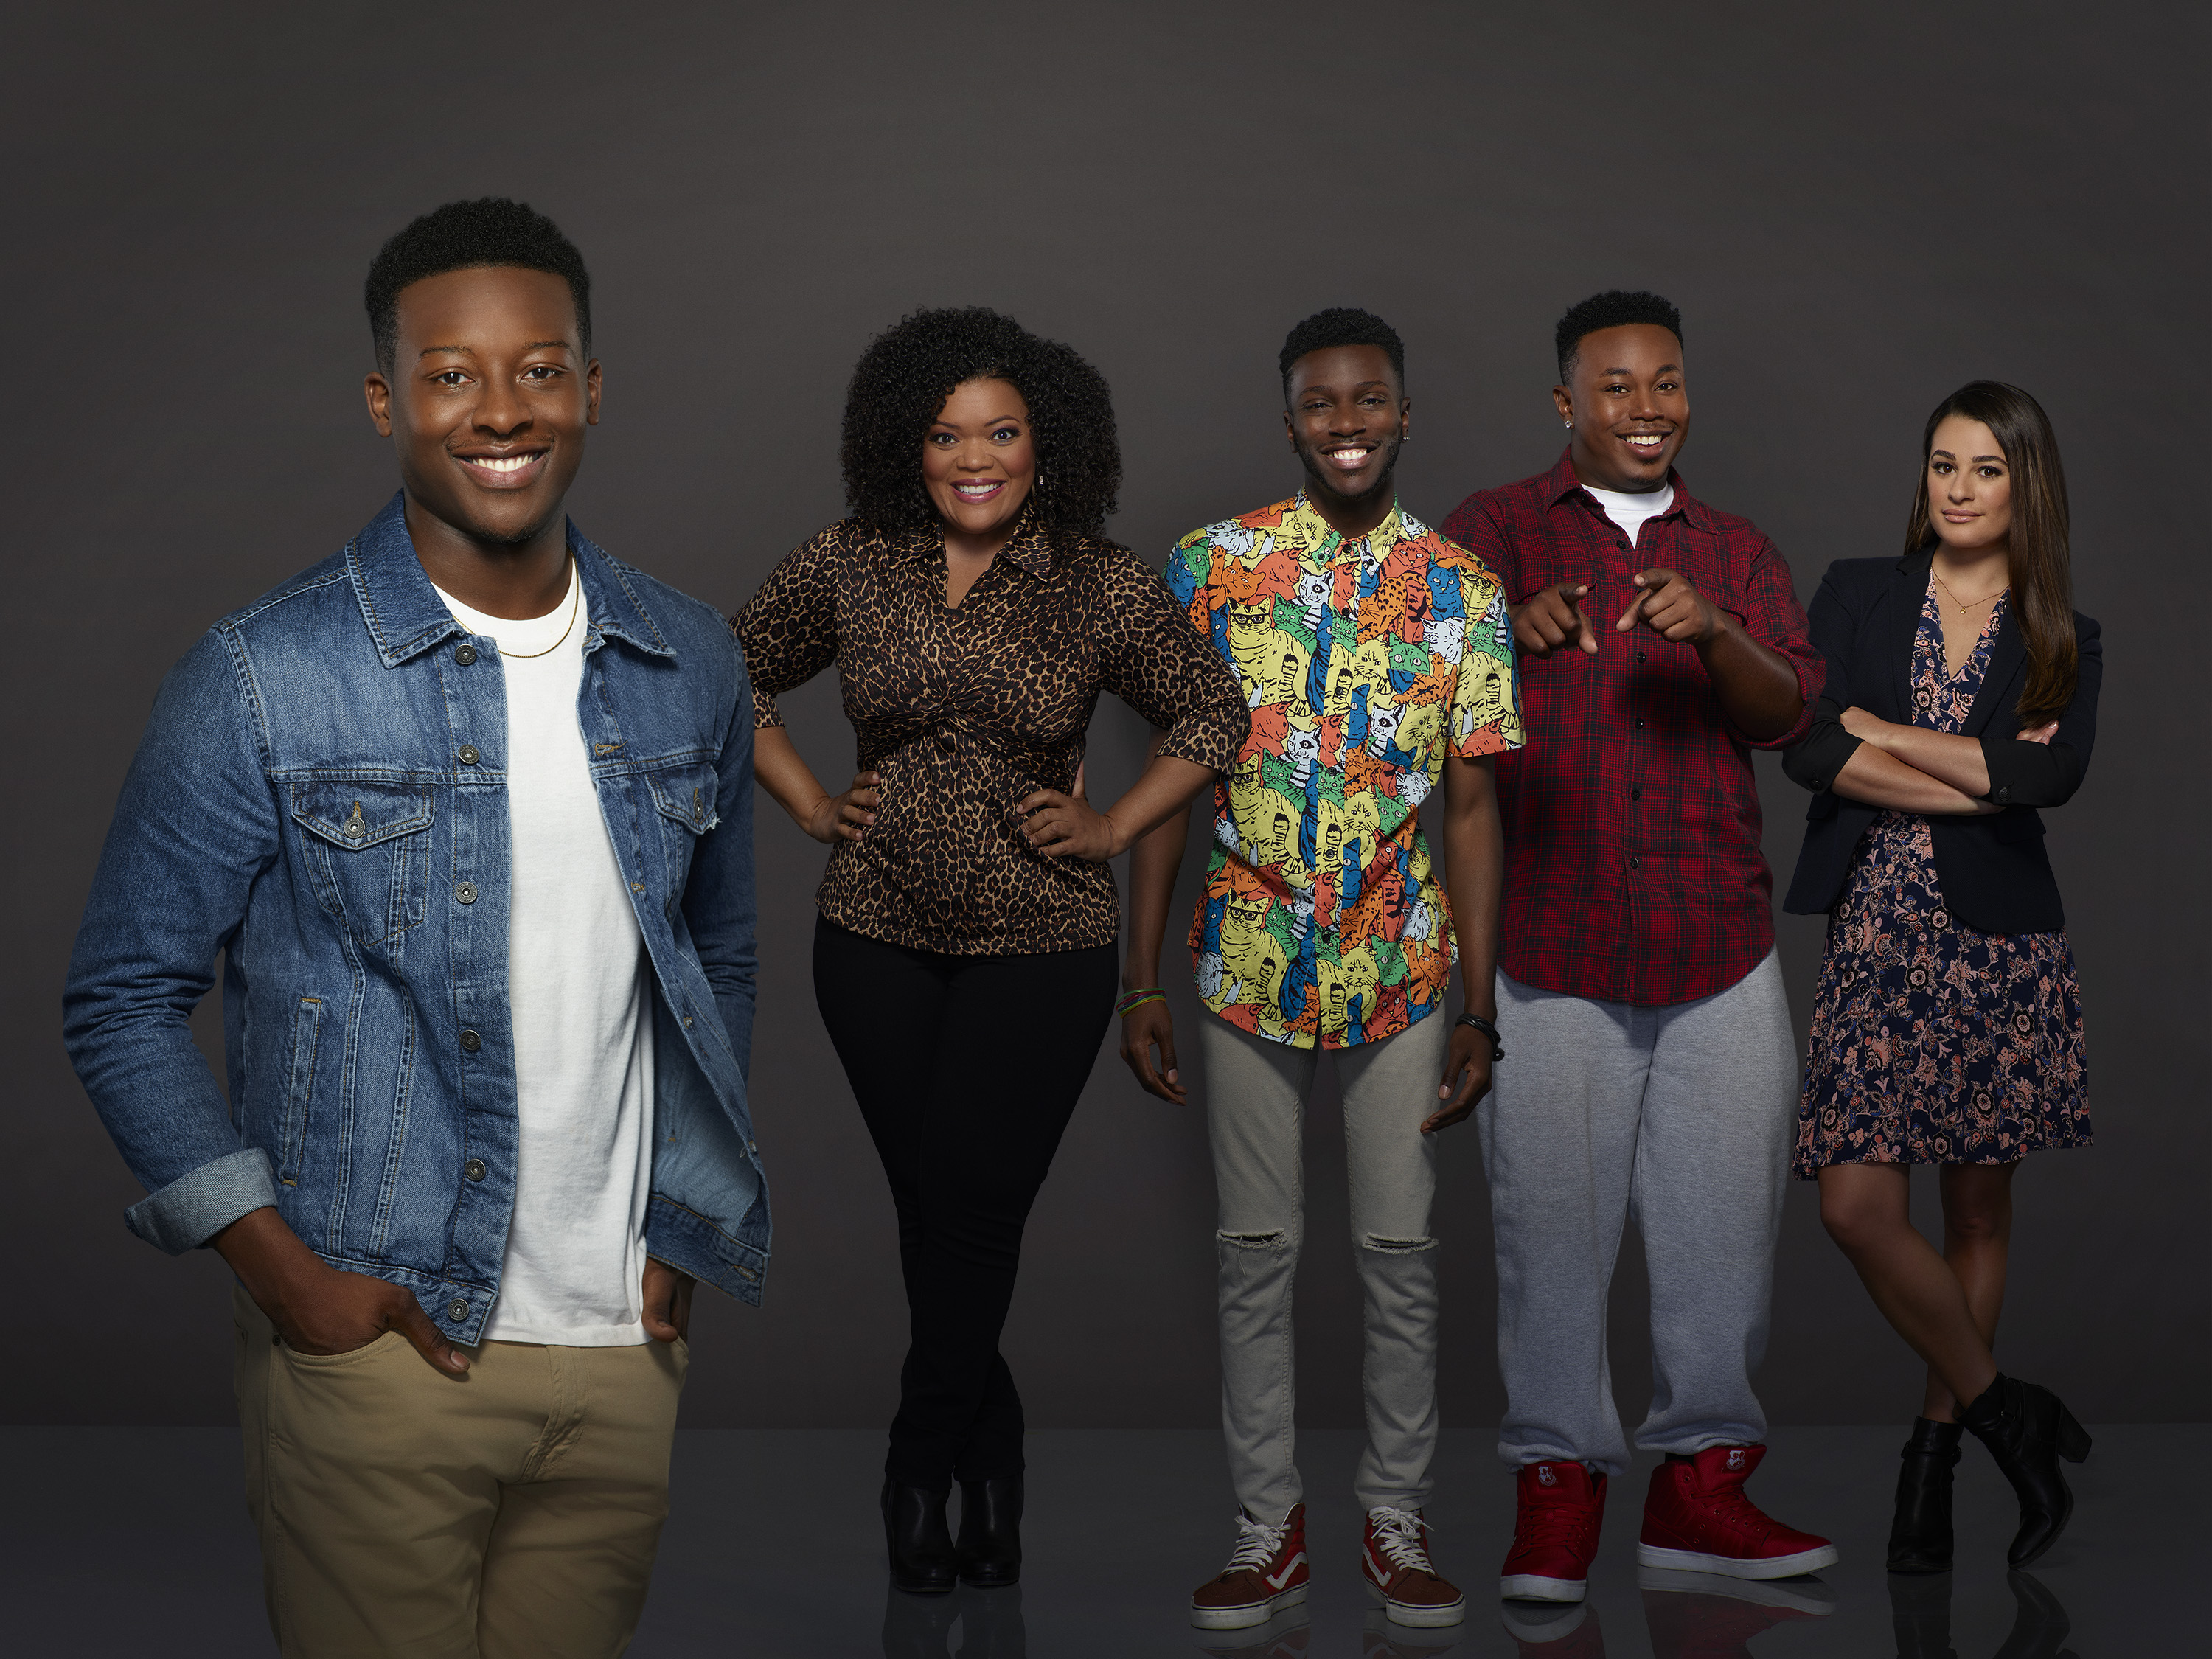 "THE MAYOR - ABC's ""The Mayor"" stars Brandon Micheal Hall as Courtney Rose, Yvette Nicole Brown as Dina Rose, Bernard David Jones as Jermaine Hardaway, Marcel Spears as T.K. Carter and Lea Michele as Valentina Flores. (ABC/Craig Sjodin)"